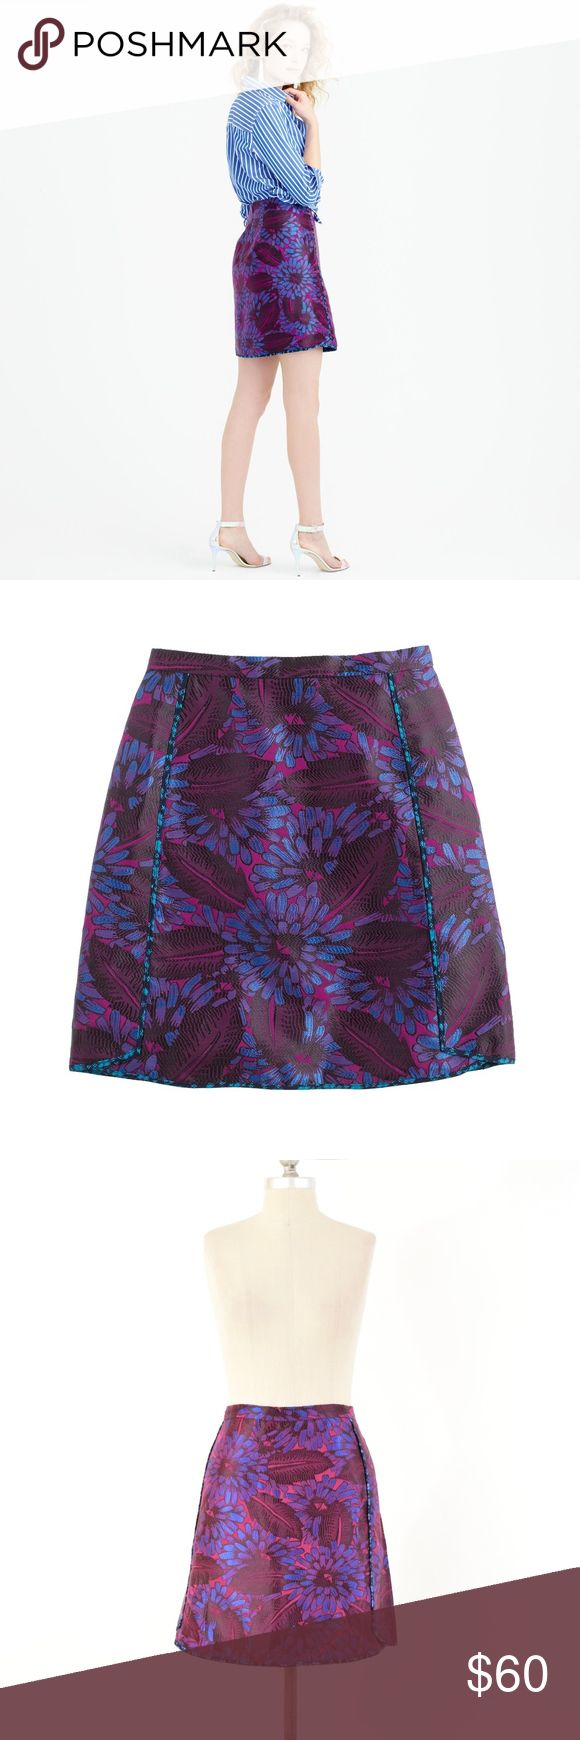 "J.Crew Mini Skirt in Midnight Floral Jacquard Gorgeous brocade/jacquard weave mini skirt from J.Crew. Dark floral pattern called ""midnight floral"", in tones of navy blue and magenta. Contrast pattern piping at the front. Mini length, slightly a-line silhouette. Lined. Size 10.  Length: 19"" Waist: 32"" Hip: 40"" J. Crew Skirts Mini"